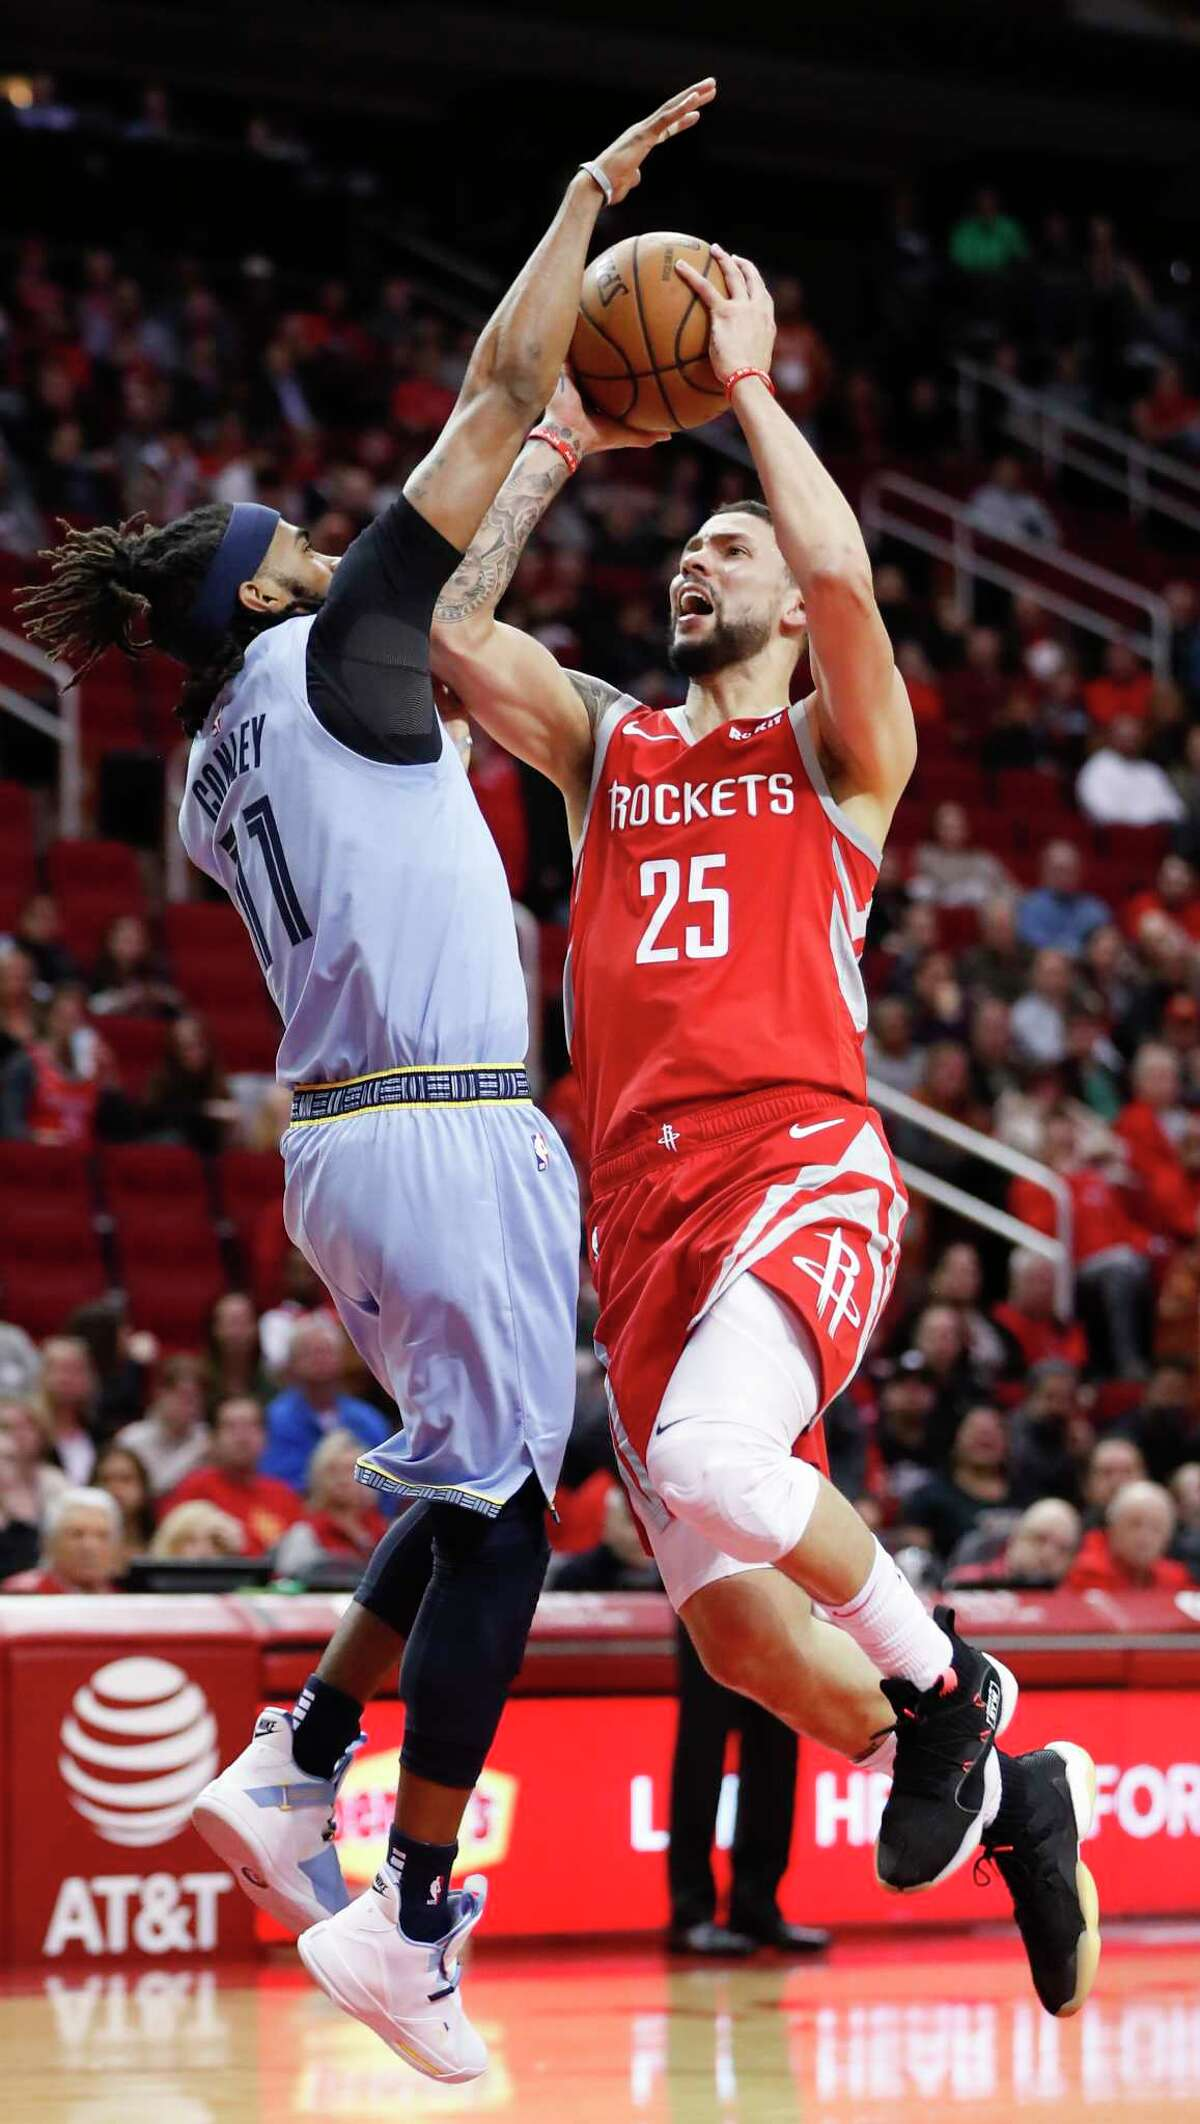 Houston Rockets guard Austin Rivers (25) goes up against Memphis Grizzlies guard Mike Conley (11) as he shoots during the first half of an NBA basketball game at Toyota Center on Monday, Jan. 14, 2019, in Houston.